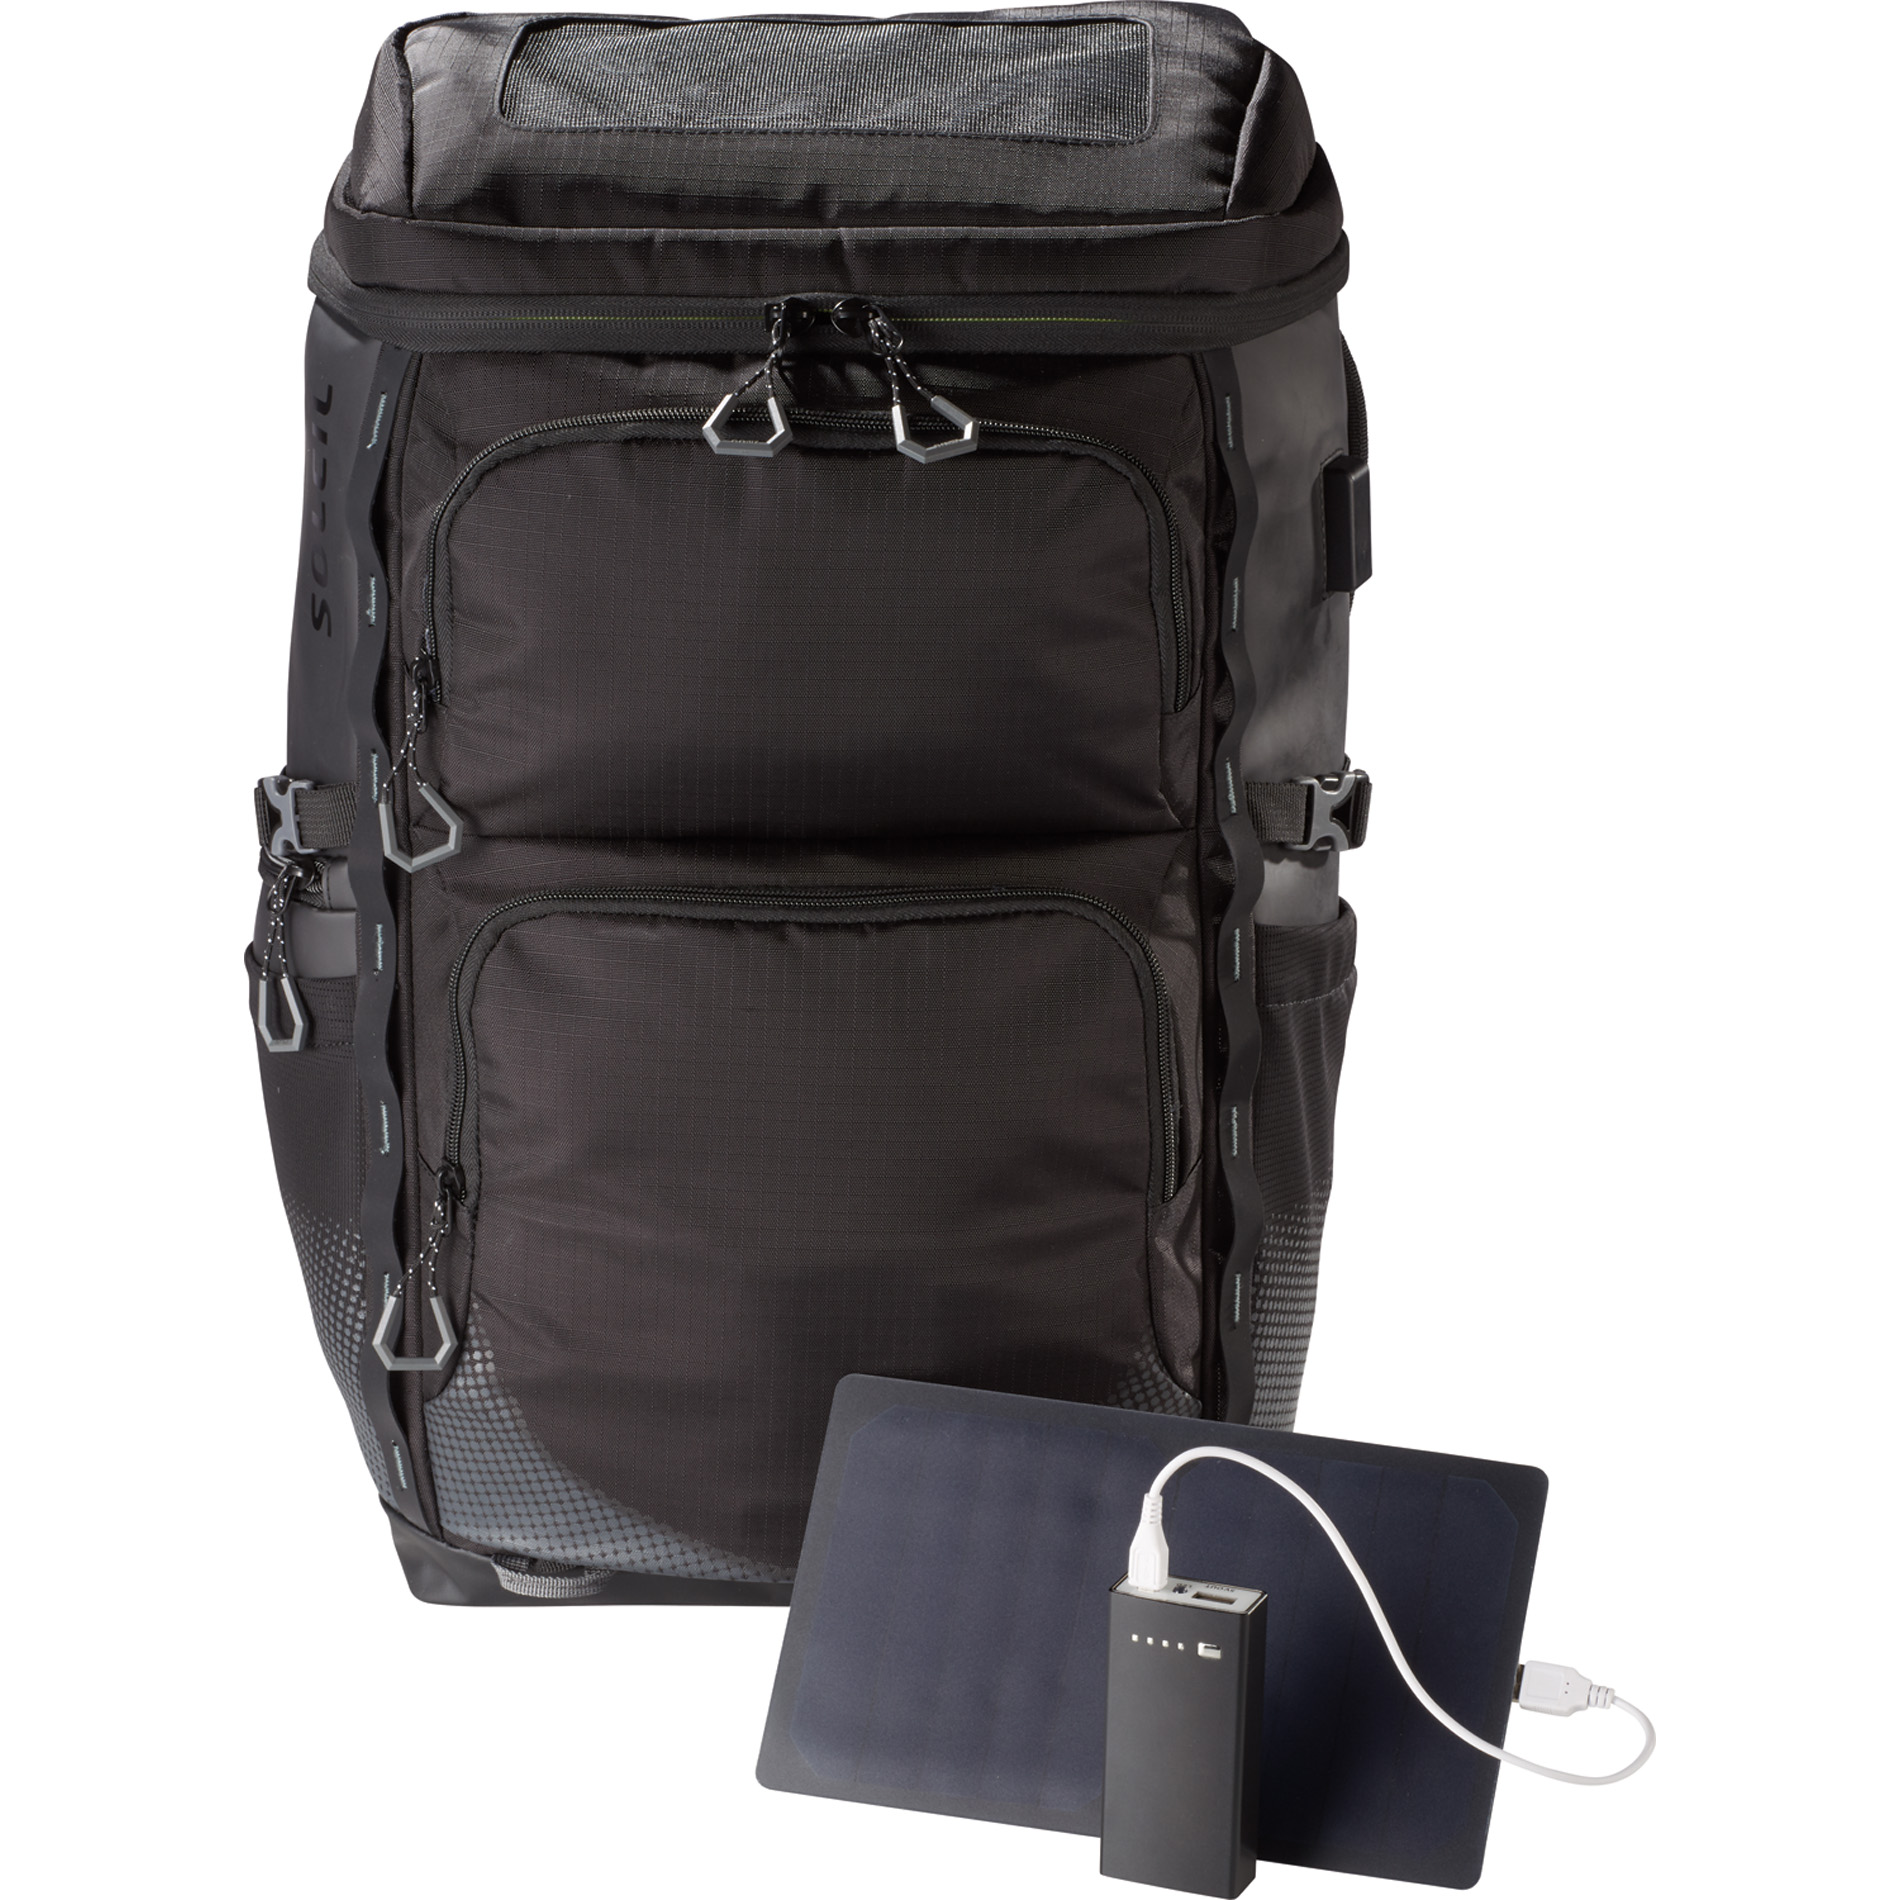 Elevate 1975-20 - Soleil Backpack w/ 4000 mAh Powerbank